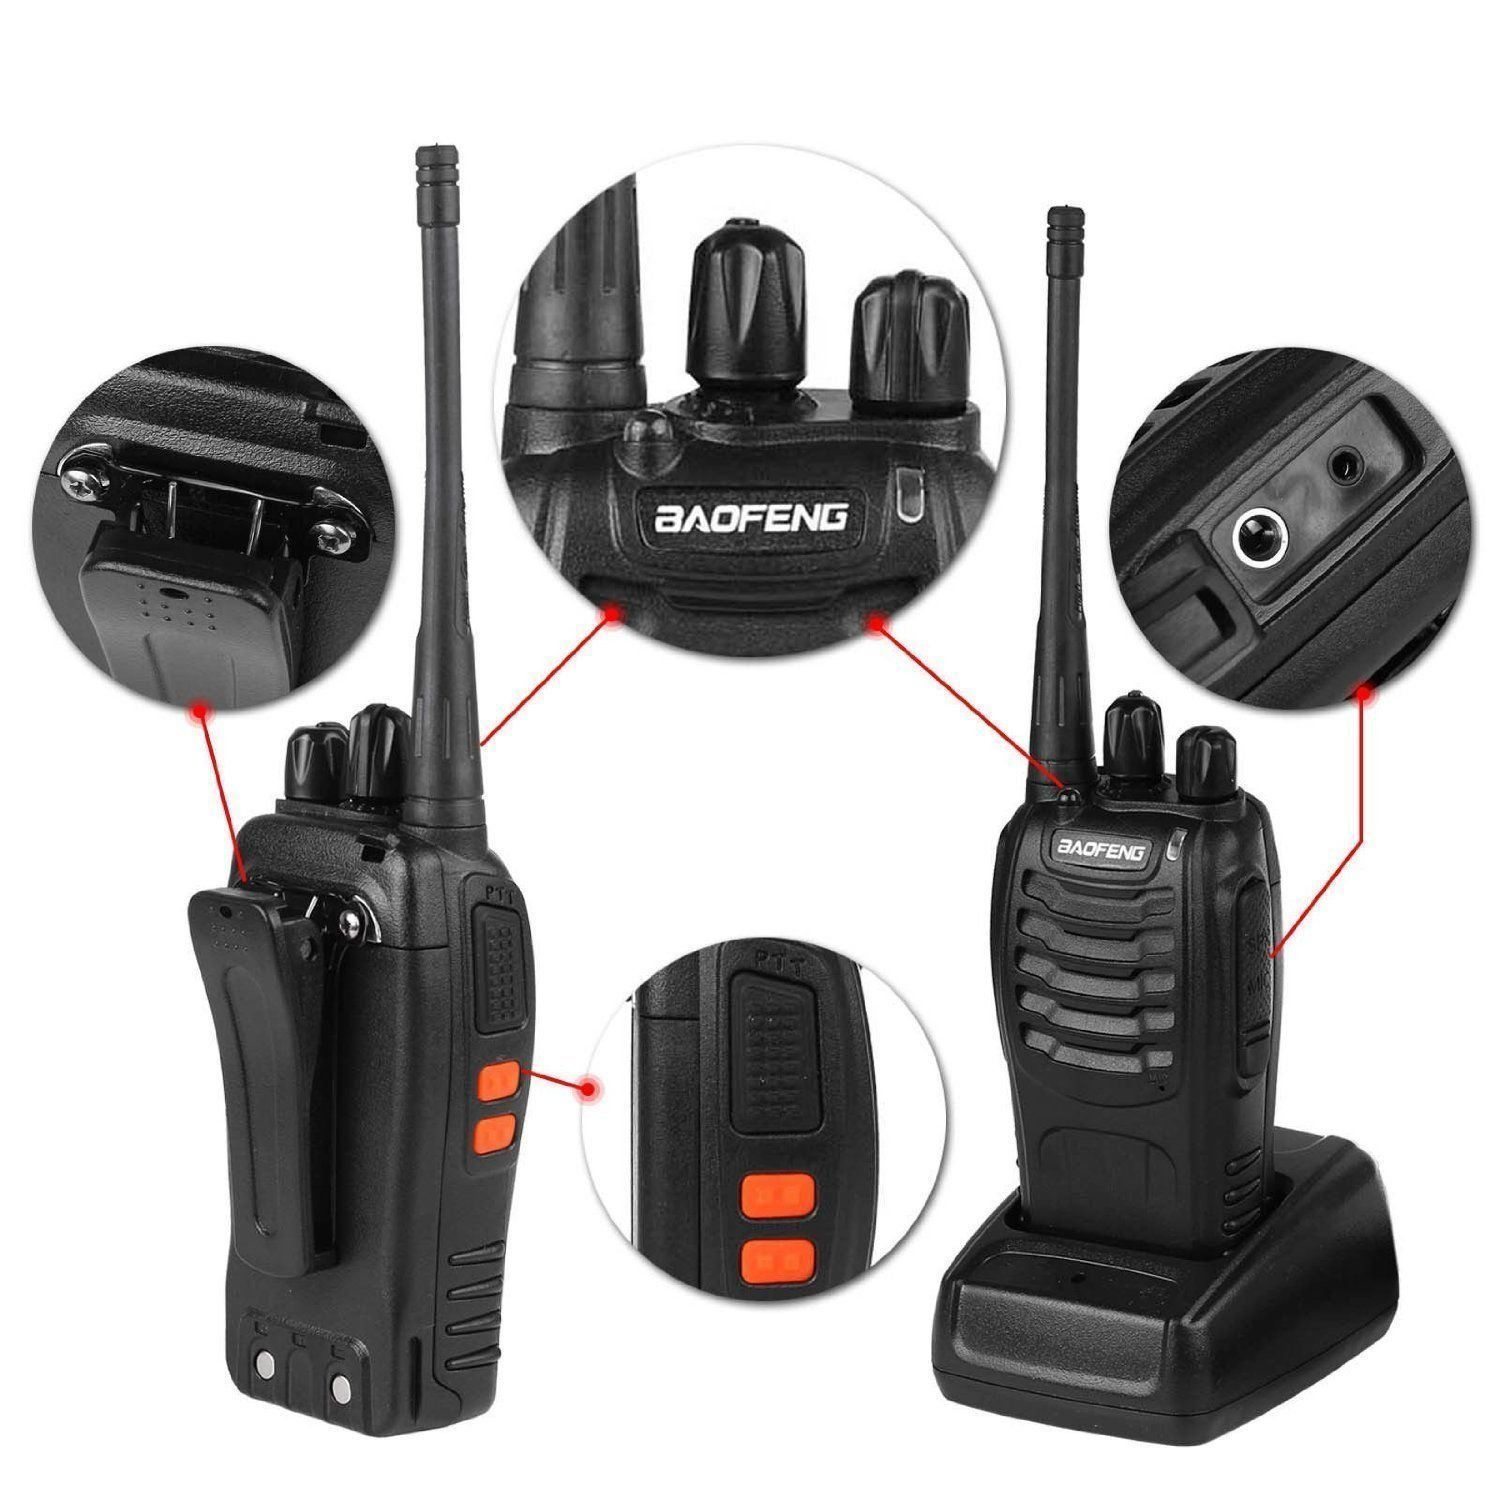 Baofeng BF-888S Rechargeable Long Range 5W Two Way Radio Walkie Talkies 16 Channel Handheld Radio Built in LED Torch Microphone With Earpiece(Pack of 10) 10 Pack by Baofeng (Image #2)